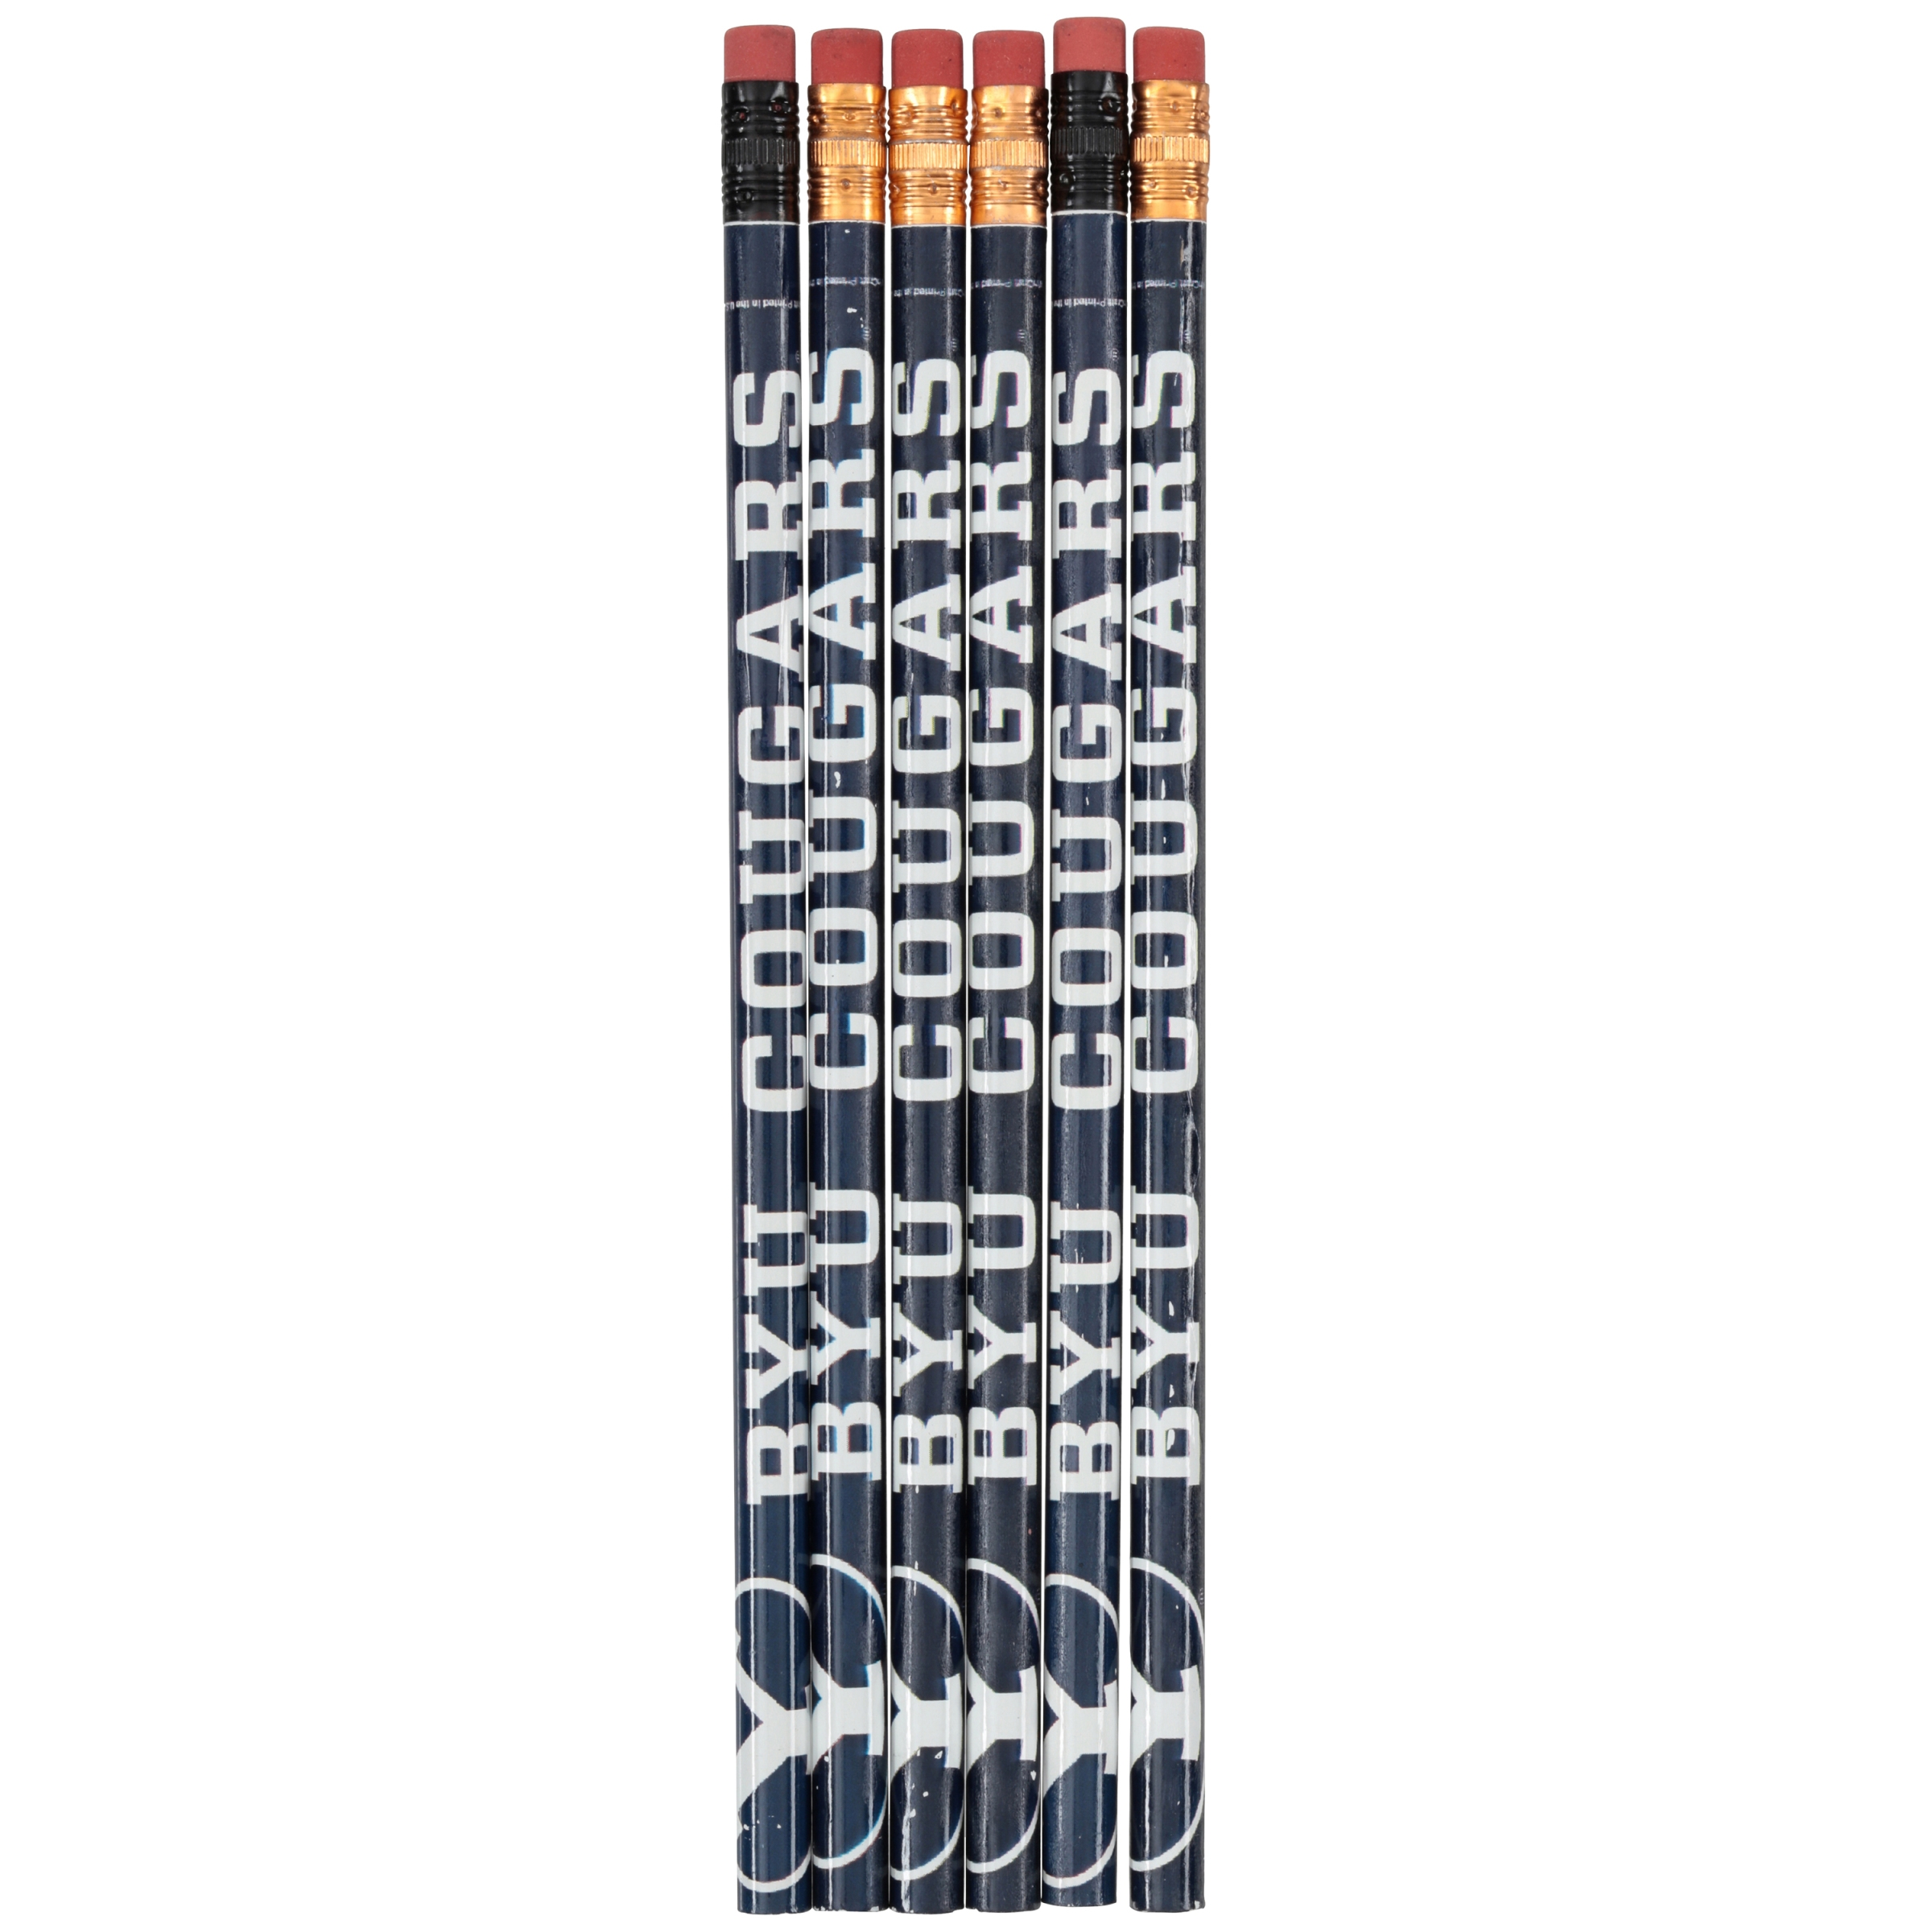 American Logo Products BYU Cougars Pencils 6 ct Pack